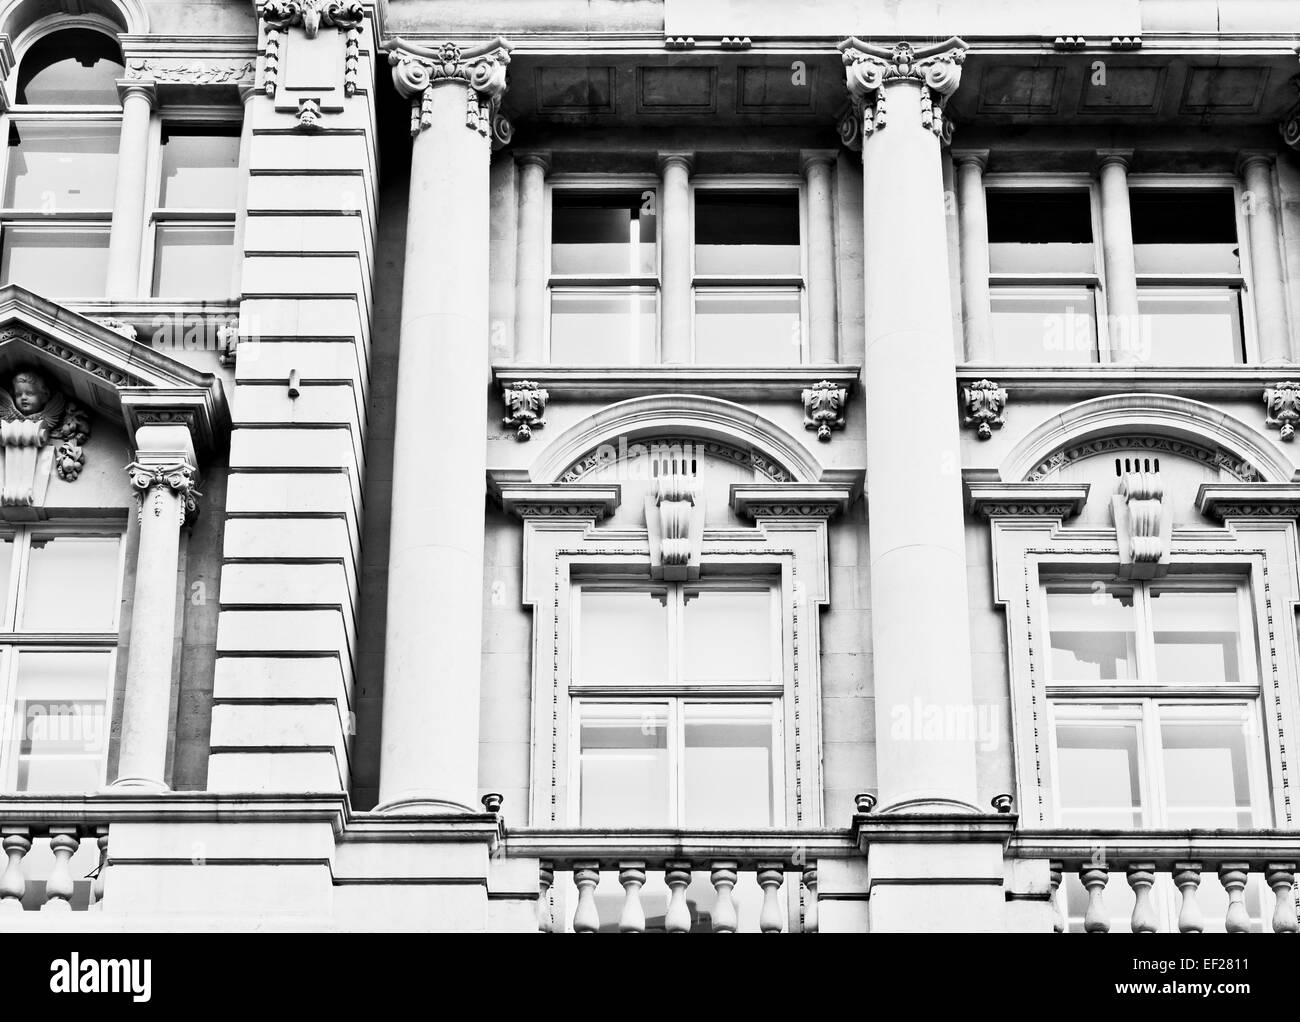 Details of pillars and windows in a well preserved building in the UK Stock Photo